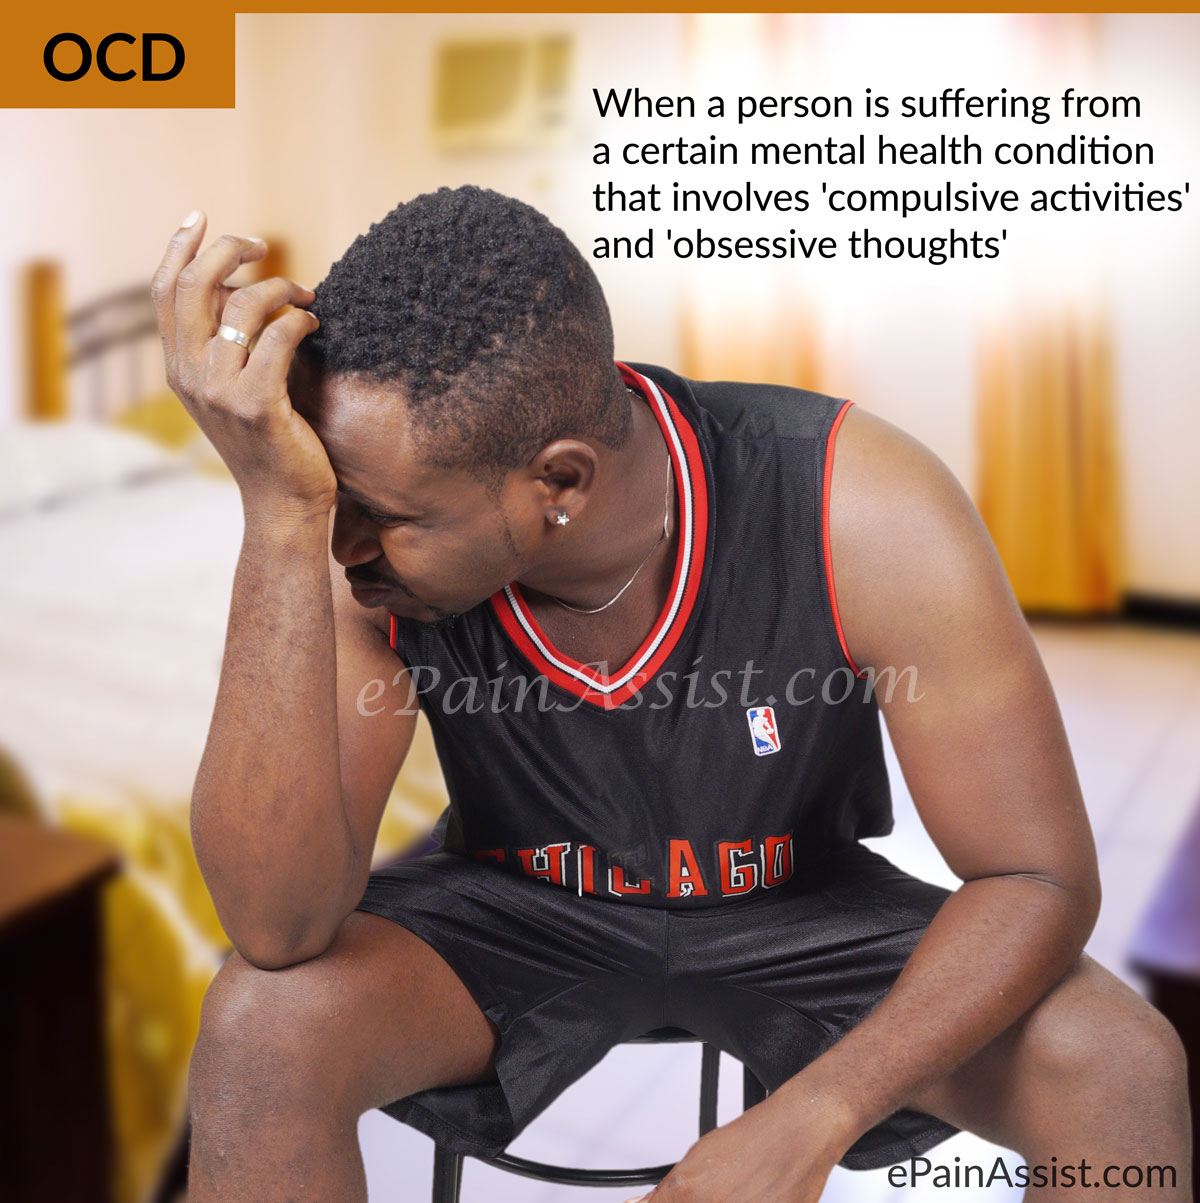 obsessive compulsive disorder ocd causes and treatments Obsessive- compulsive disorder: play a key role in obsessive thoughts and compulsive behavior signs and symptoms of ocd causes of ocd treatment for.